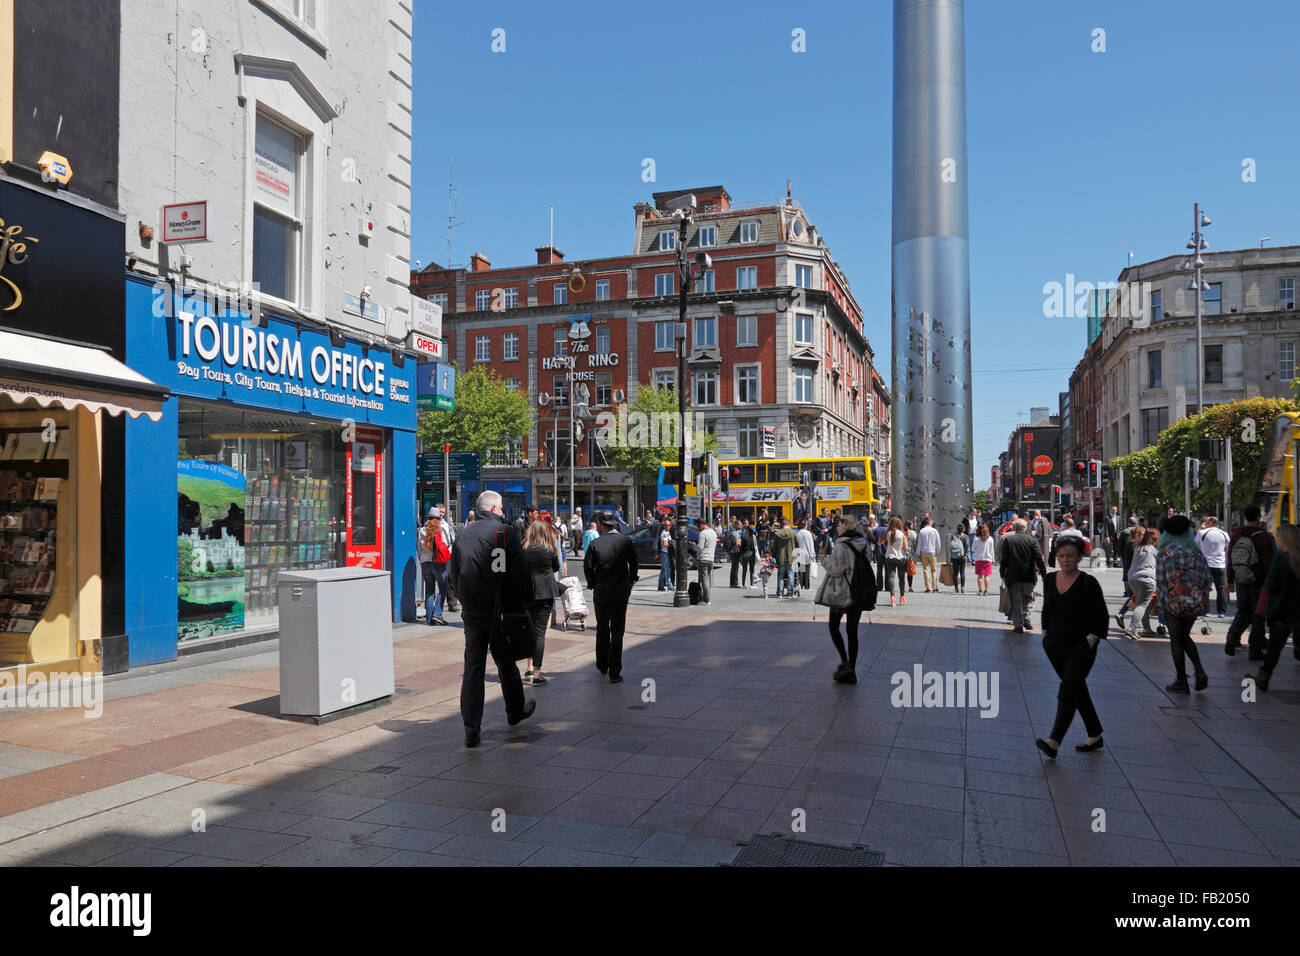 Tourism Office in the Henry Street and Spire Monument in the background, Dublin, Ireland - Stock Image